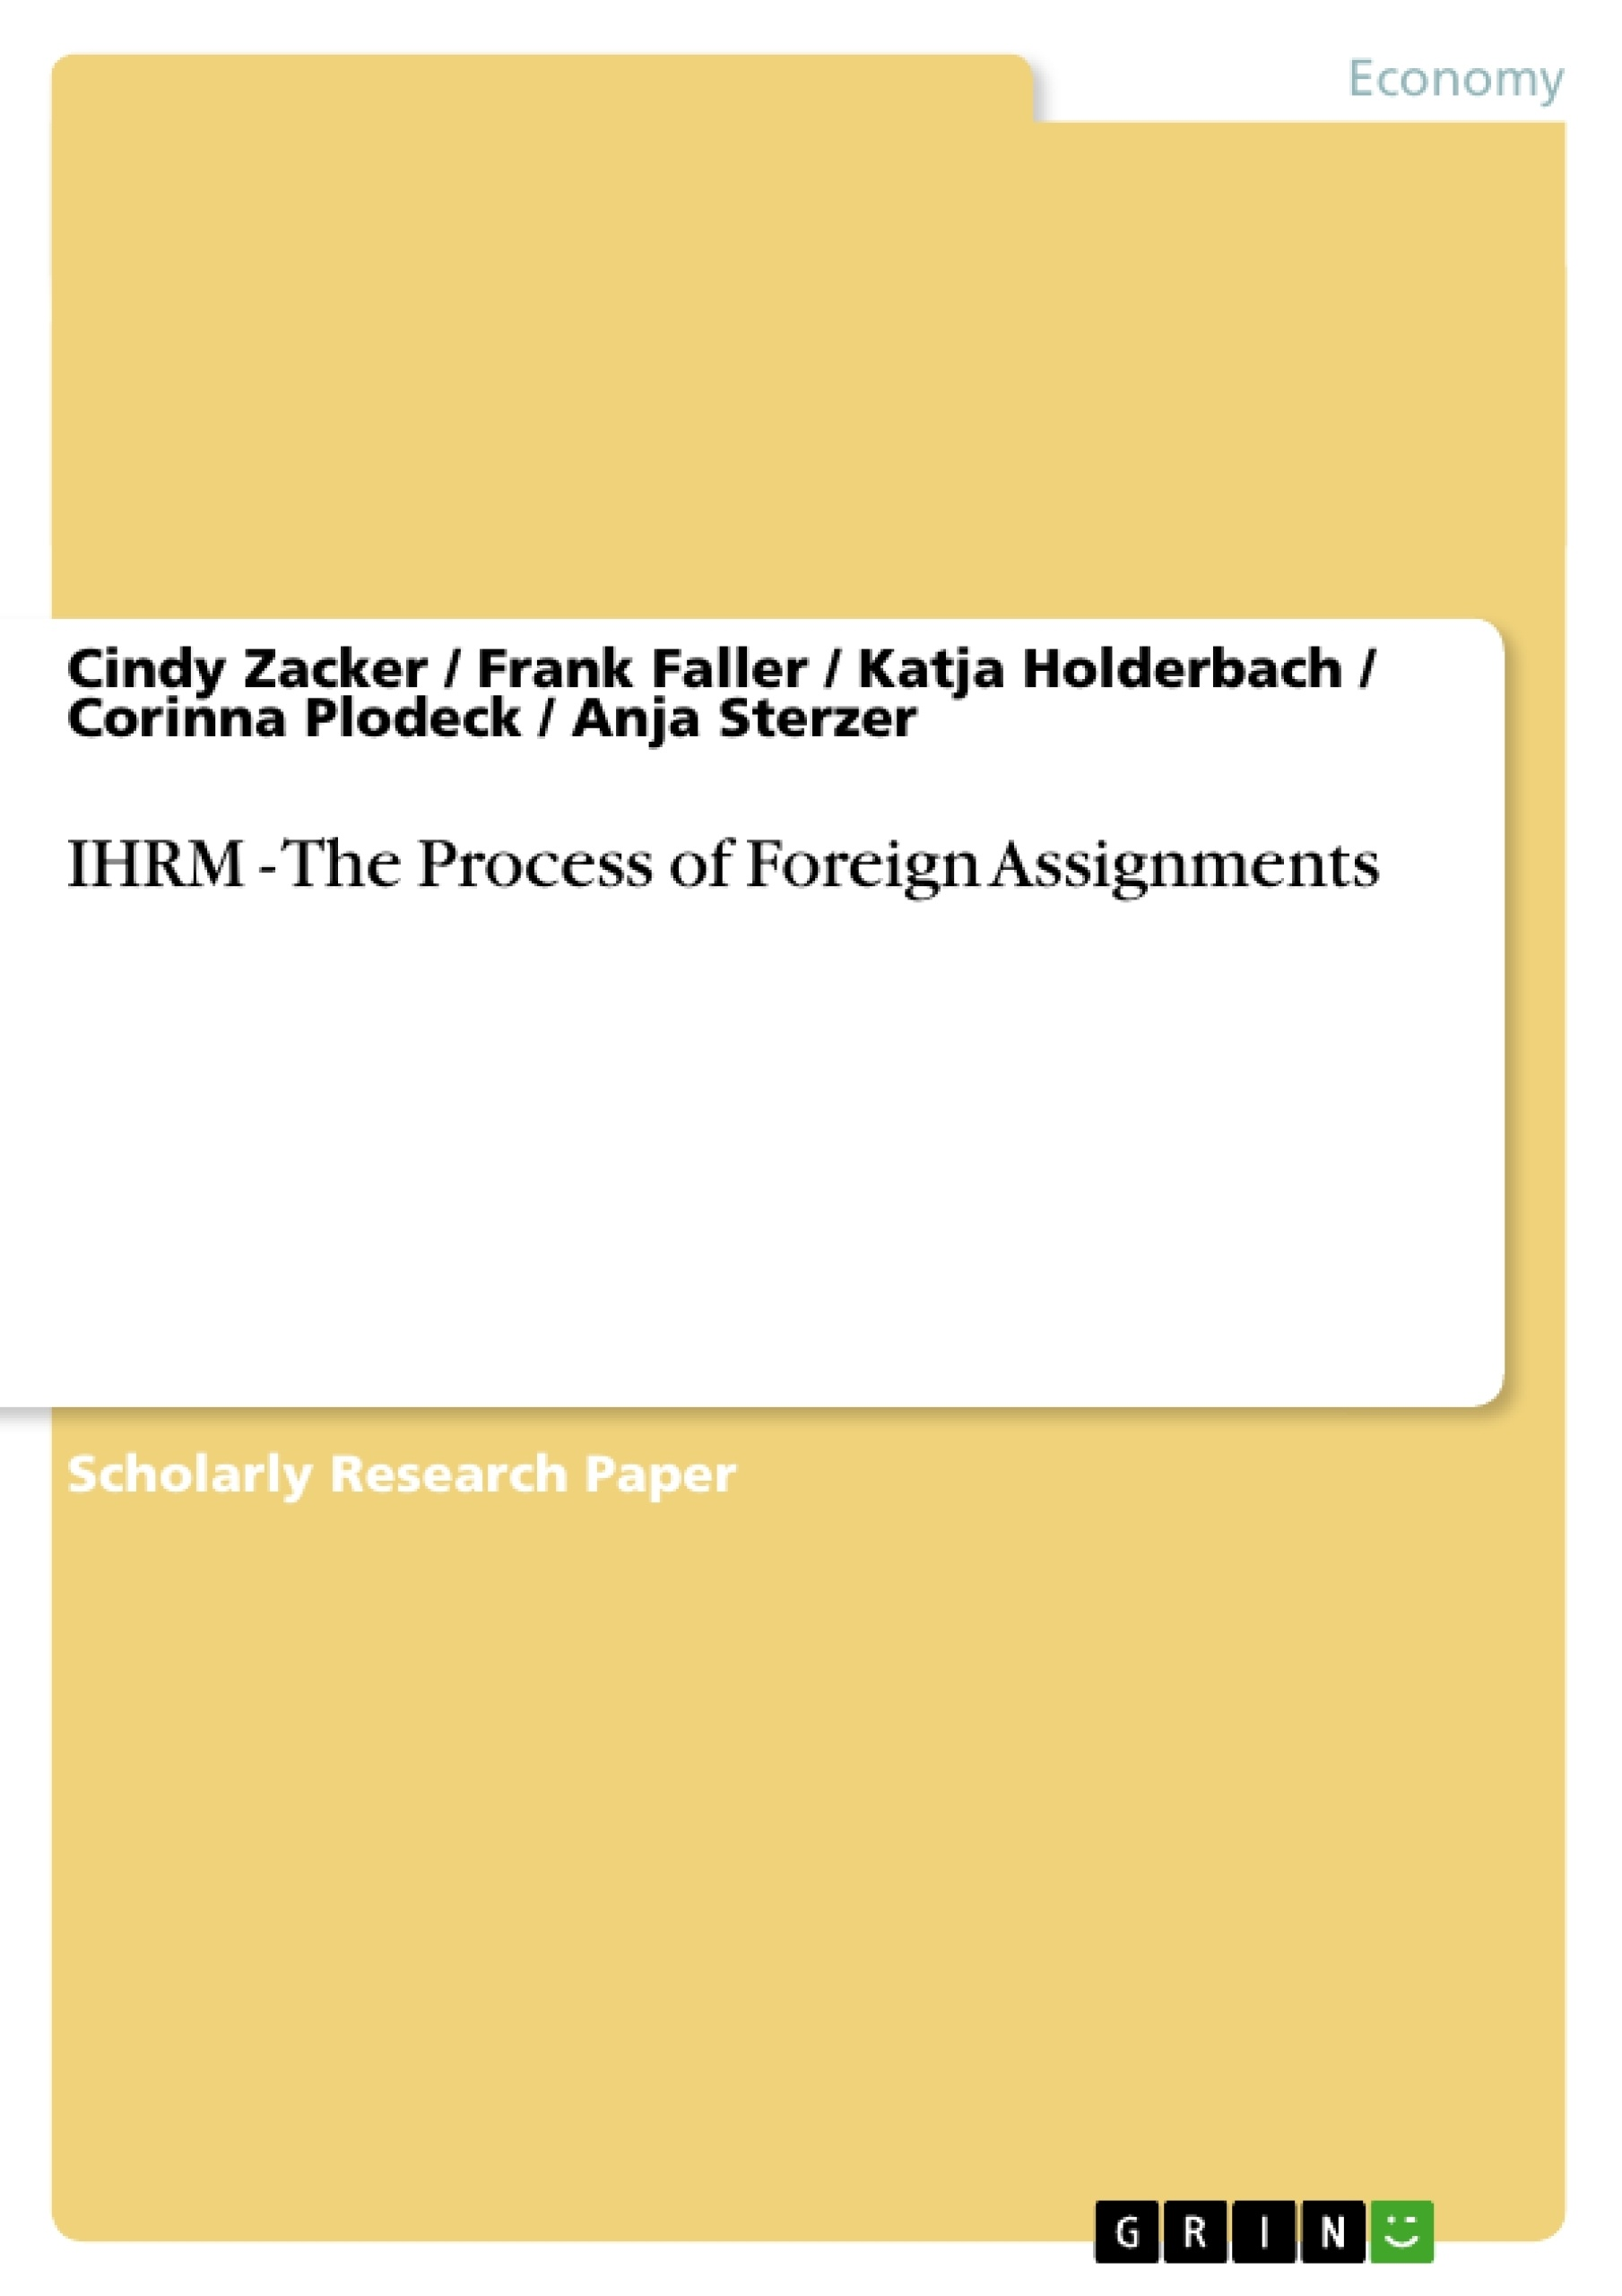 Business process reengineering master thesis